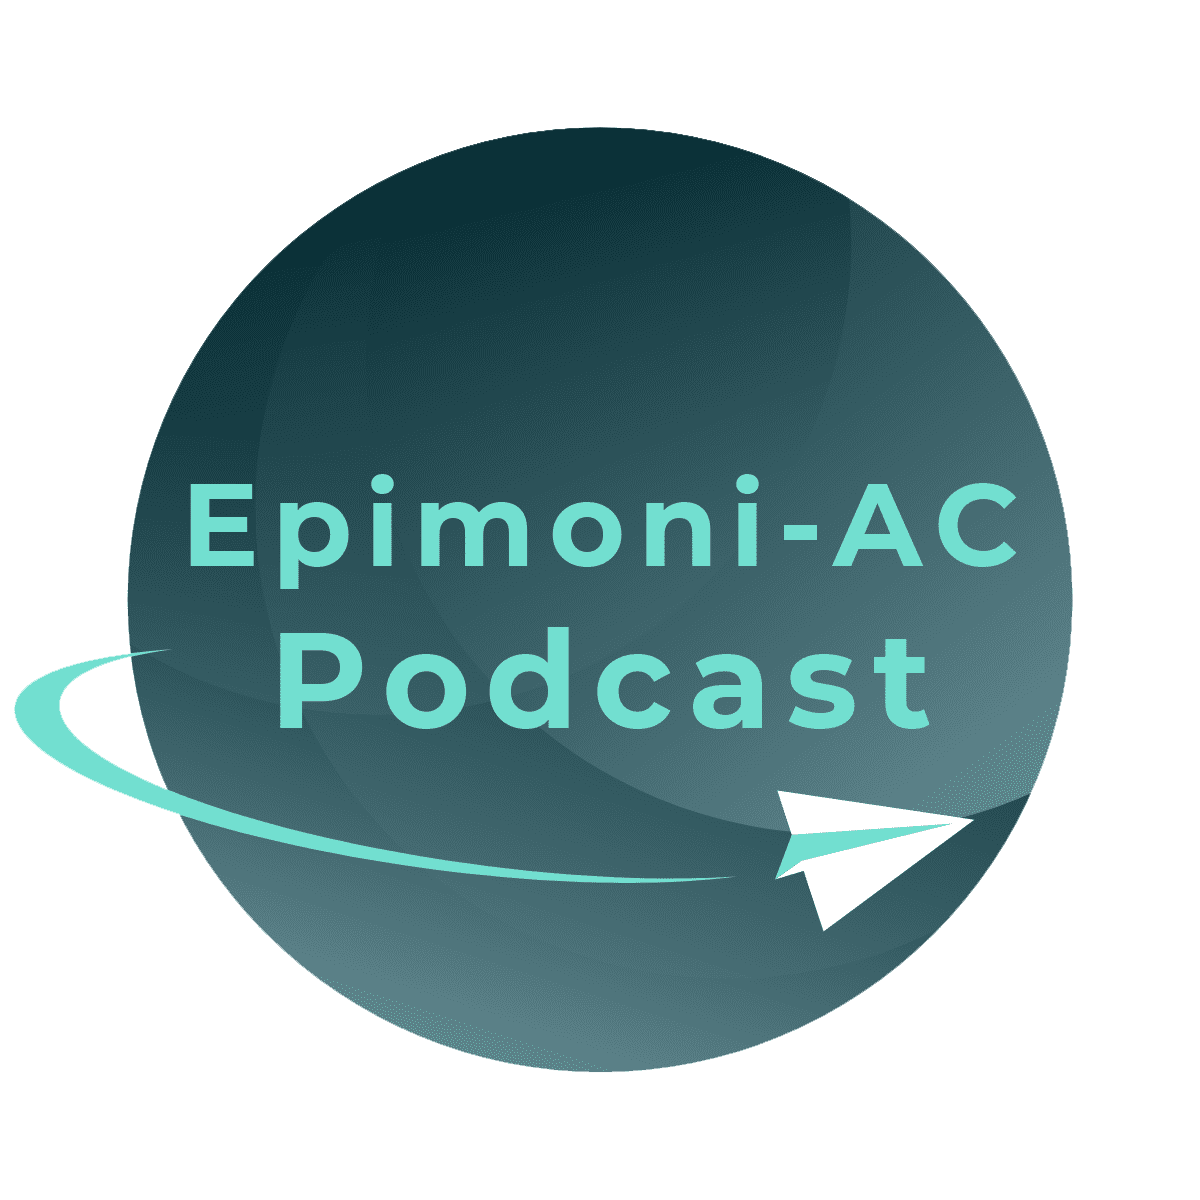 Podcast Epimoni-ac